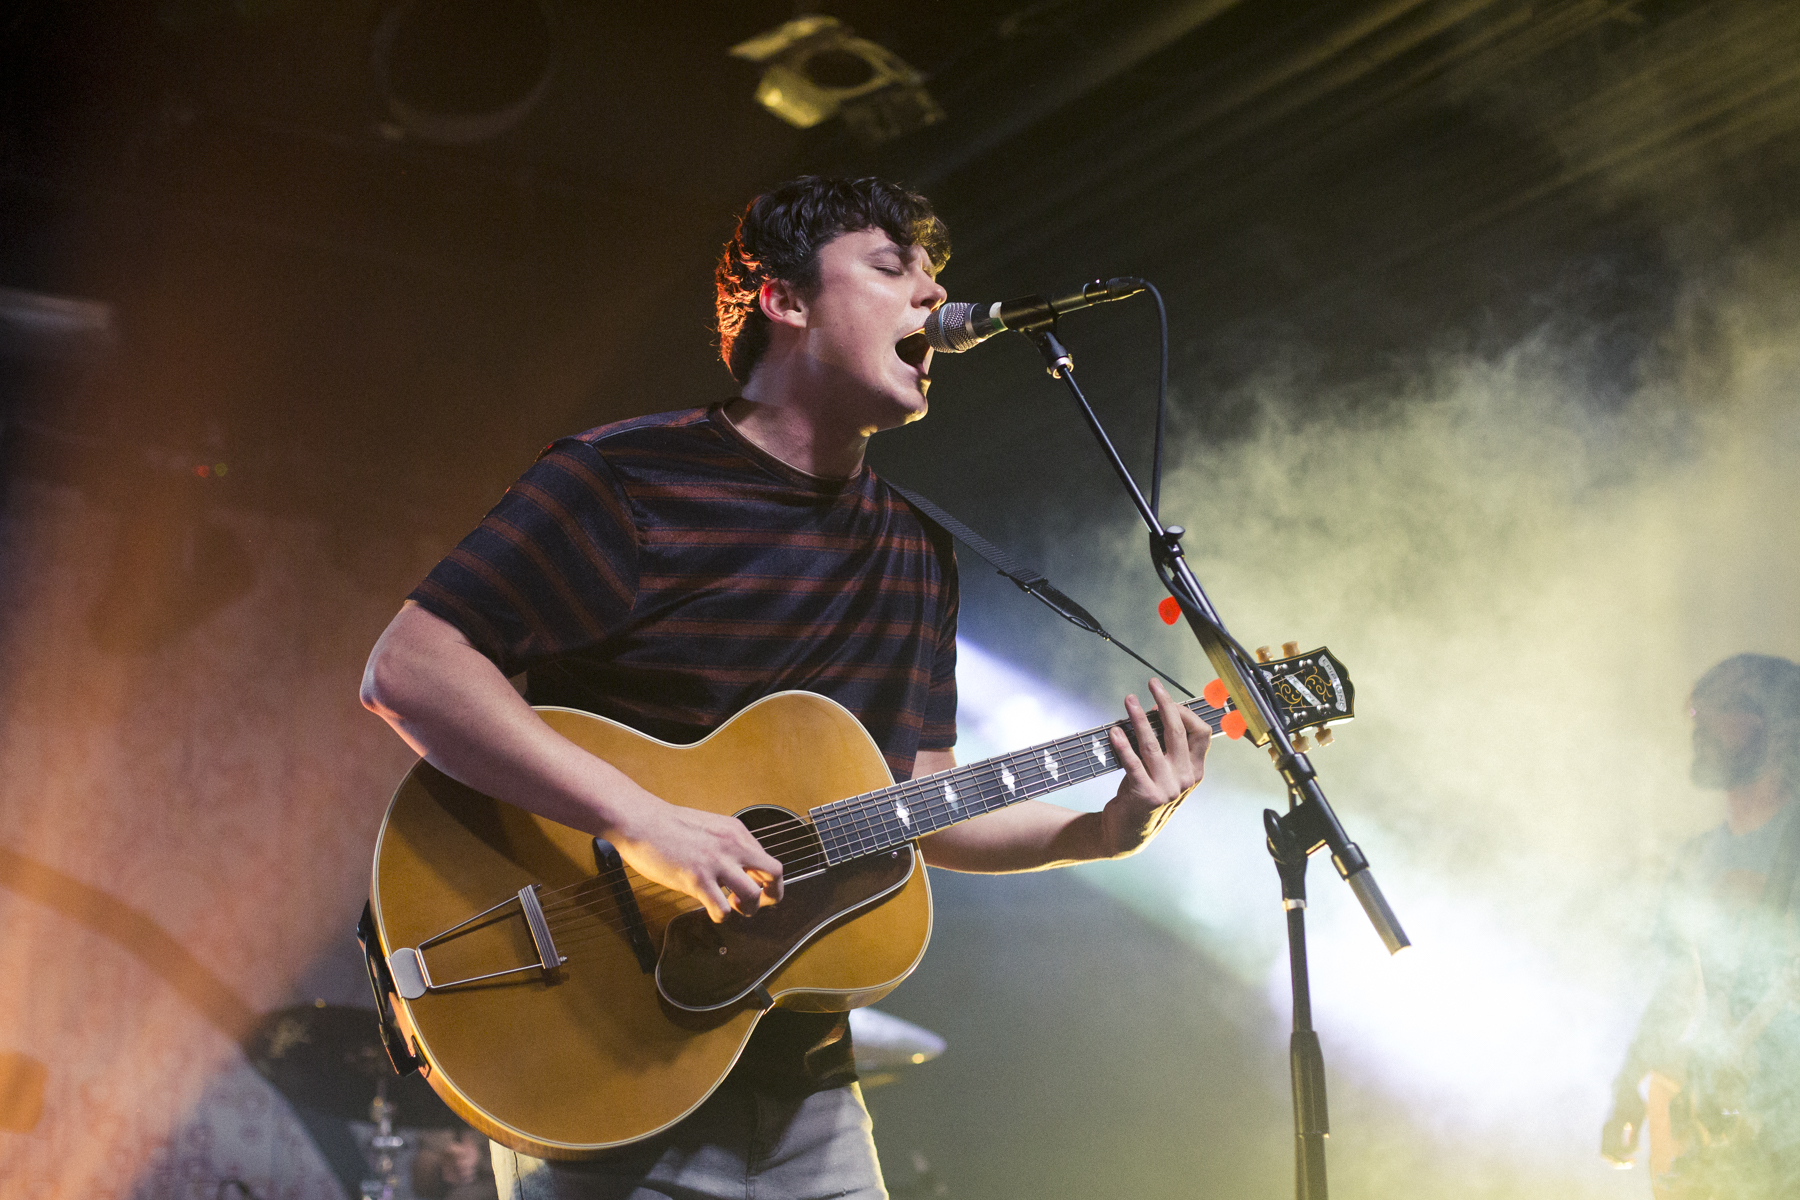 JAW_FrontBottoms-0260.jpg